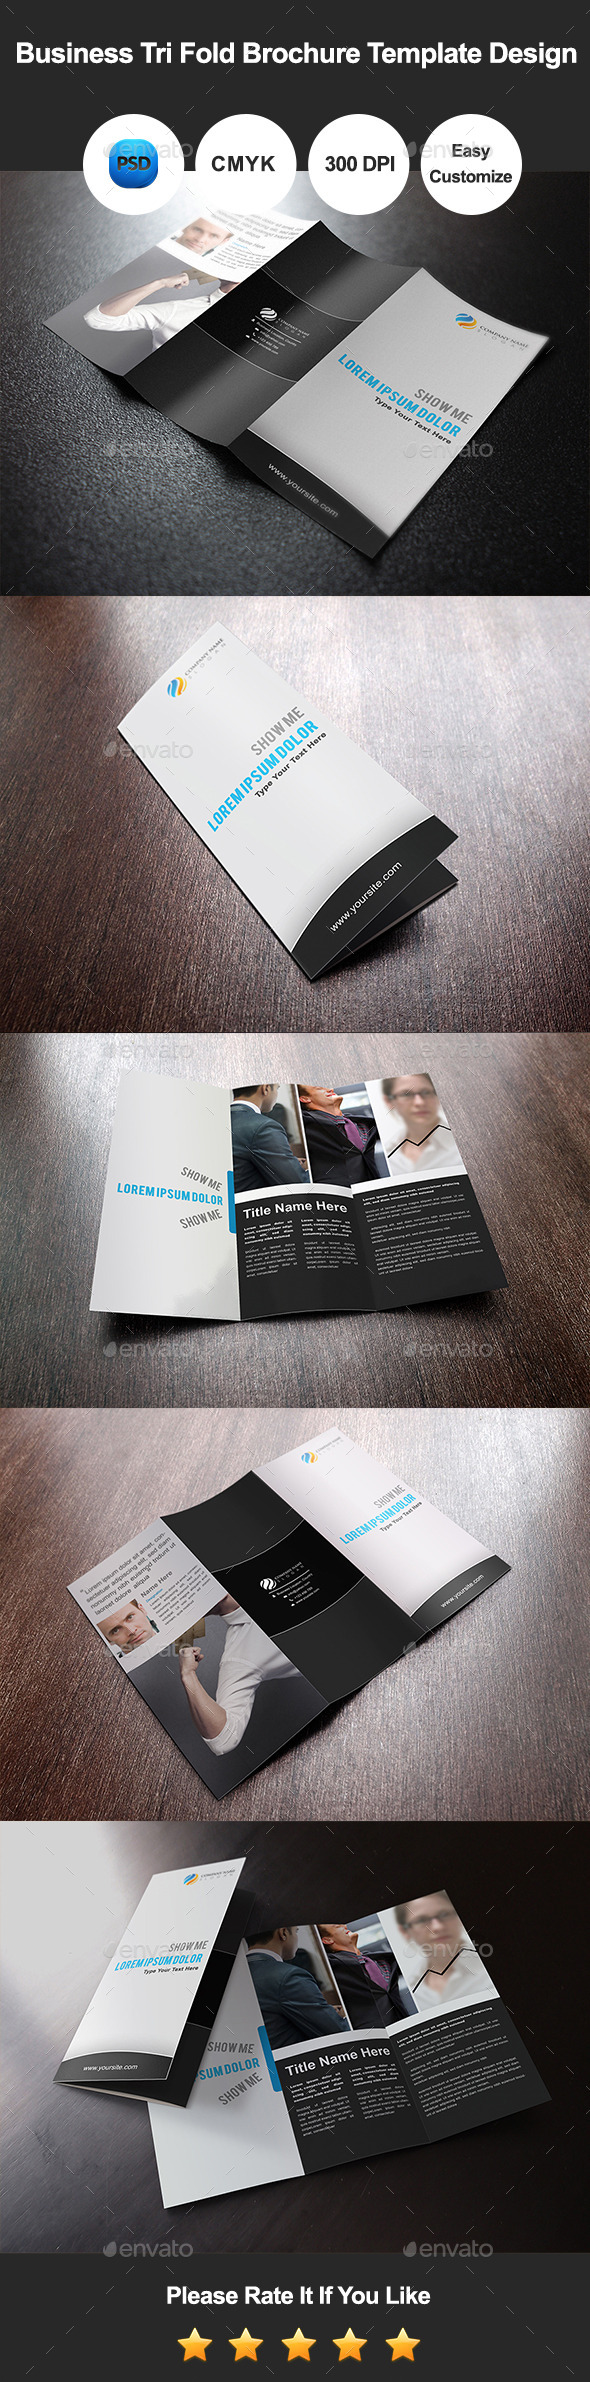 GraphicRiver Business Tri Fold Brochure Template Design 10892514